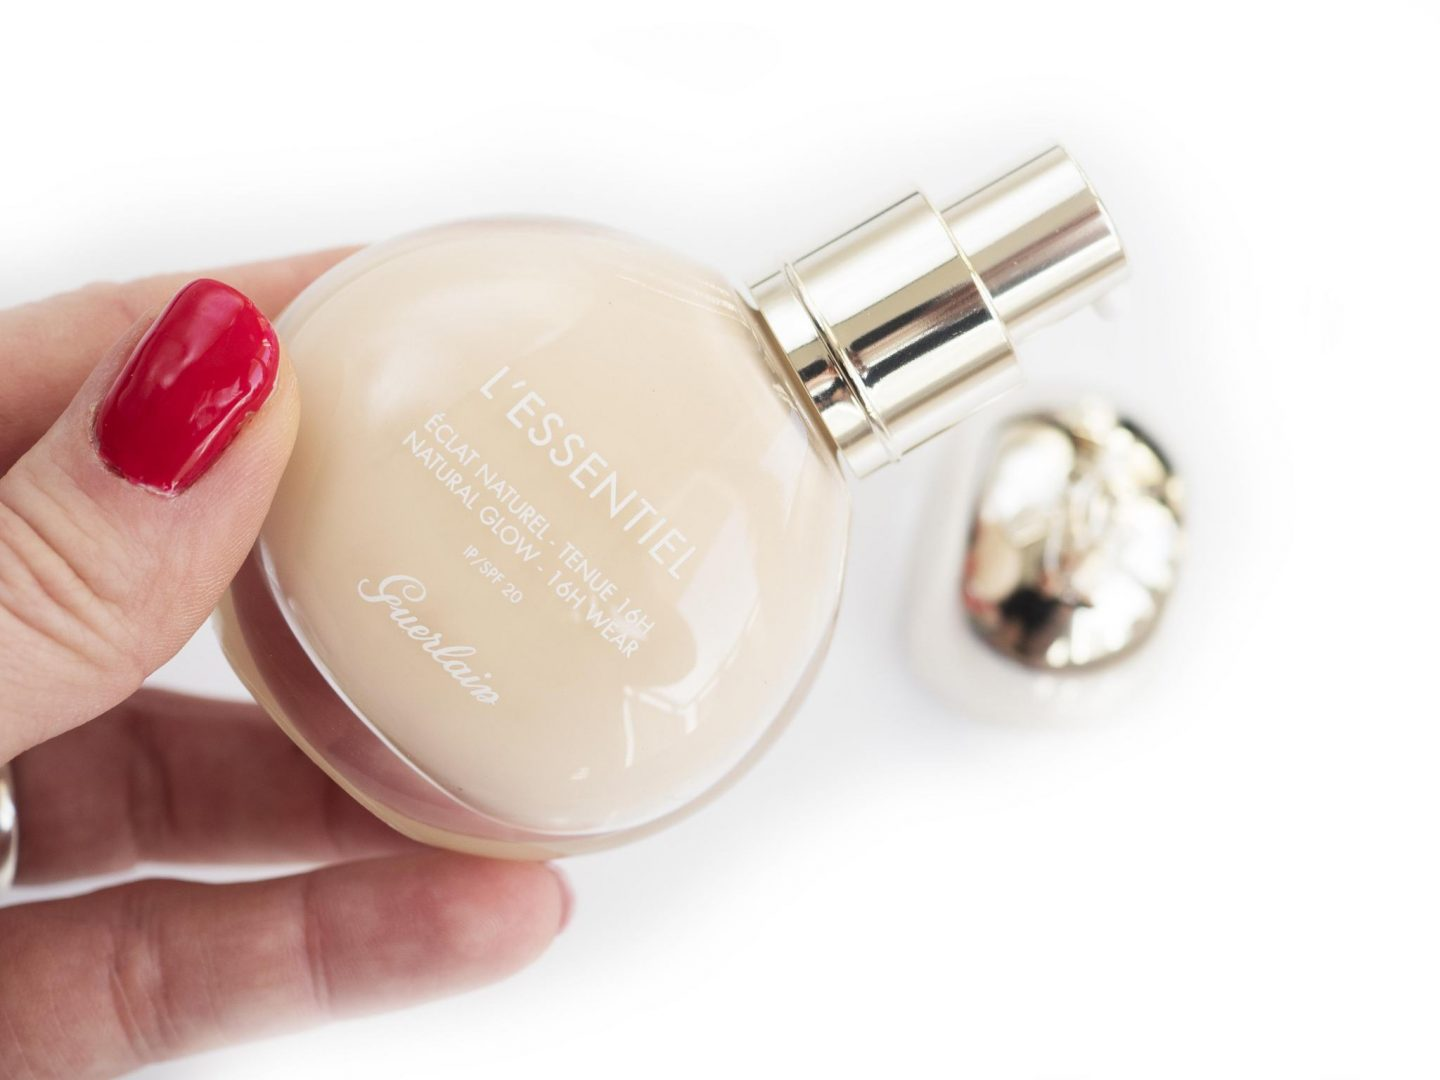 Guerlain L'Essentiel Natural Glow